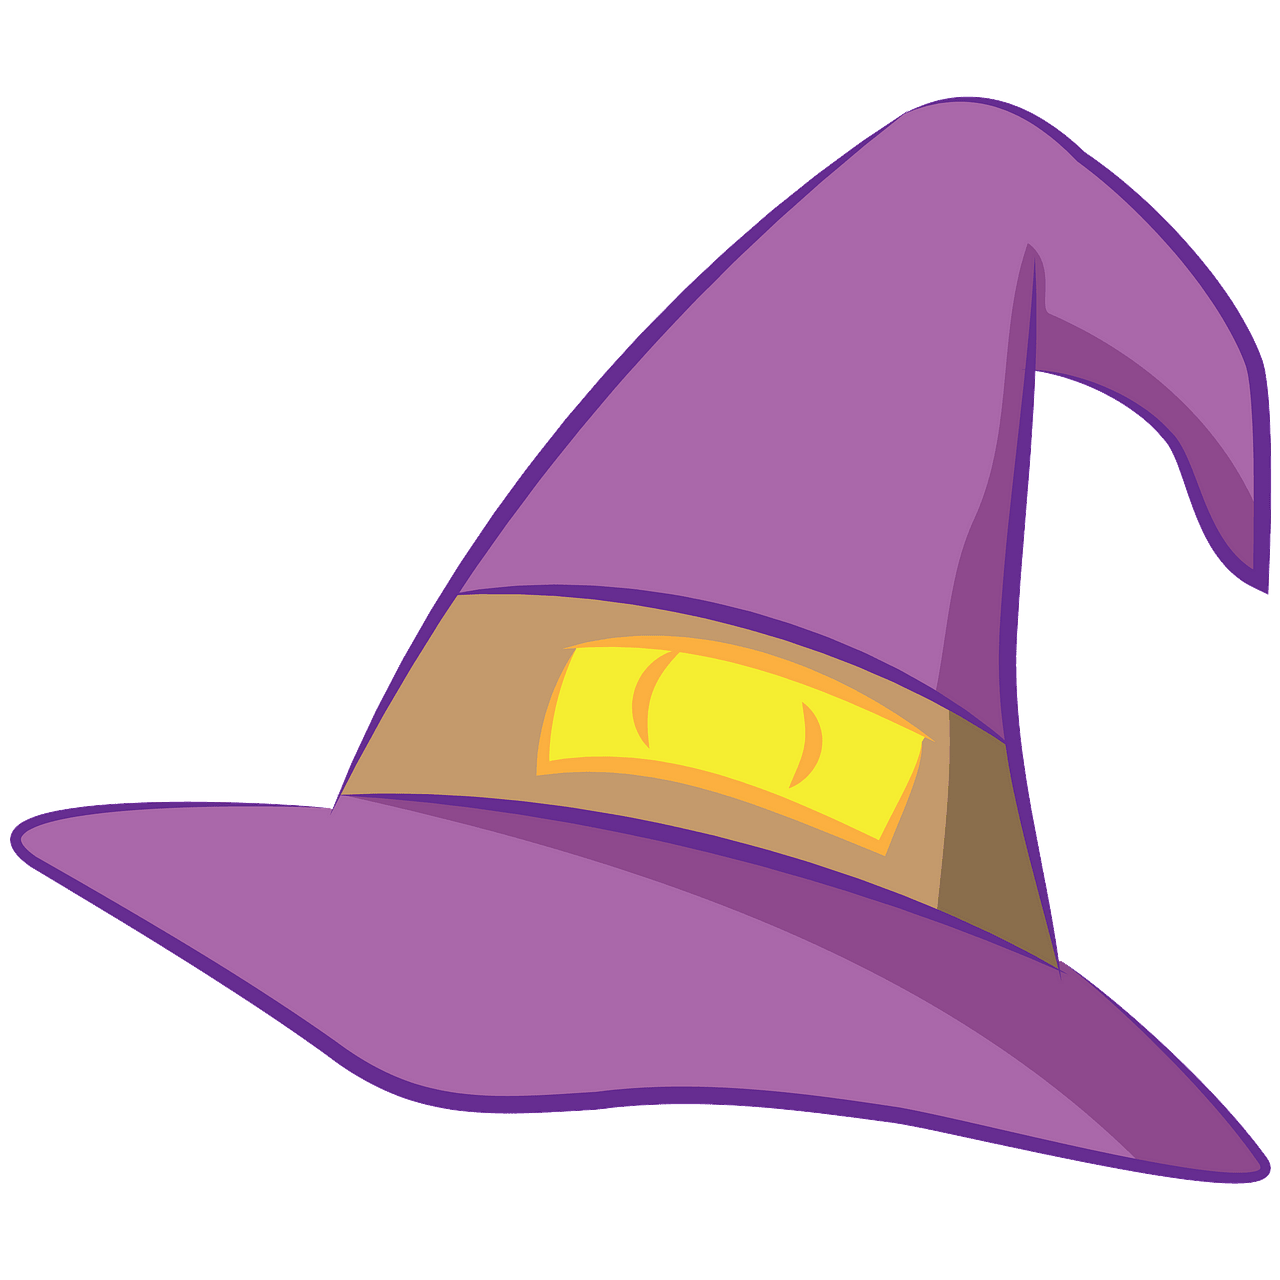 Witch hat clipart. Free download..